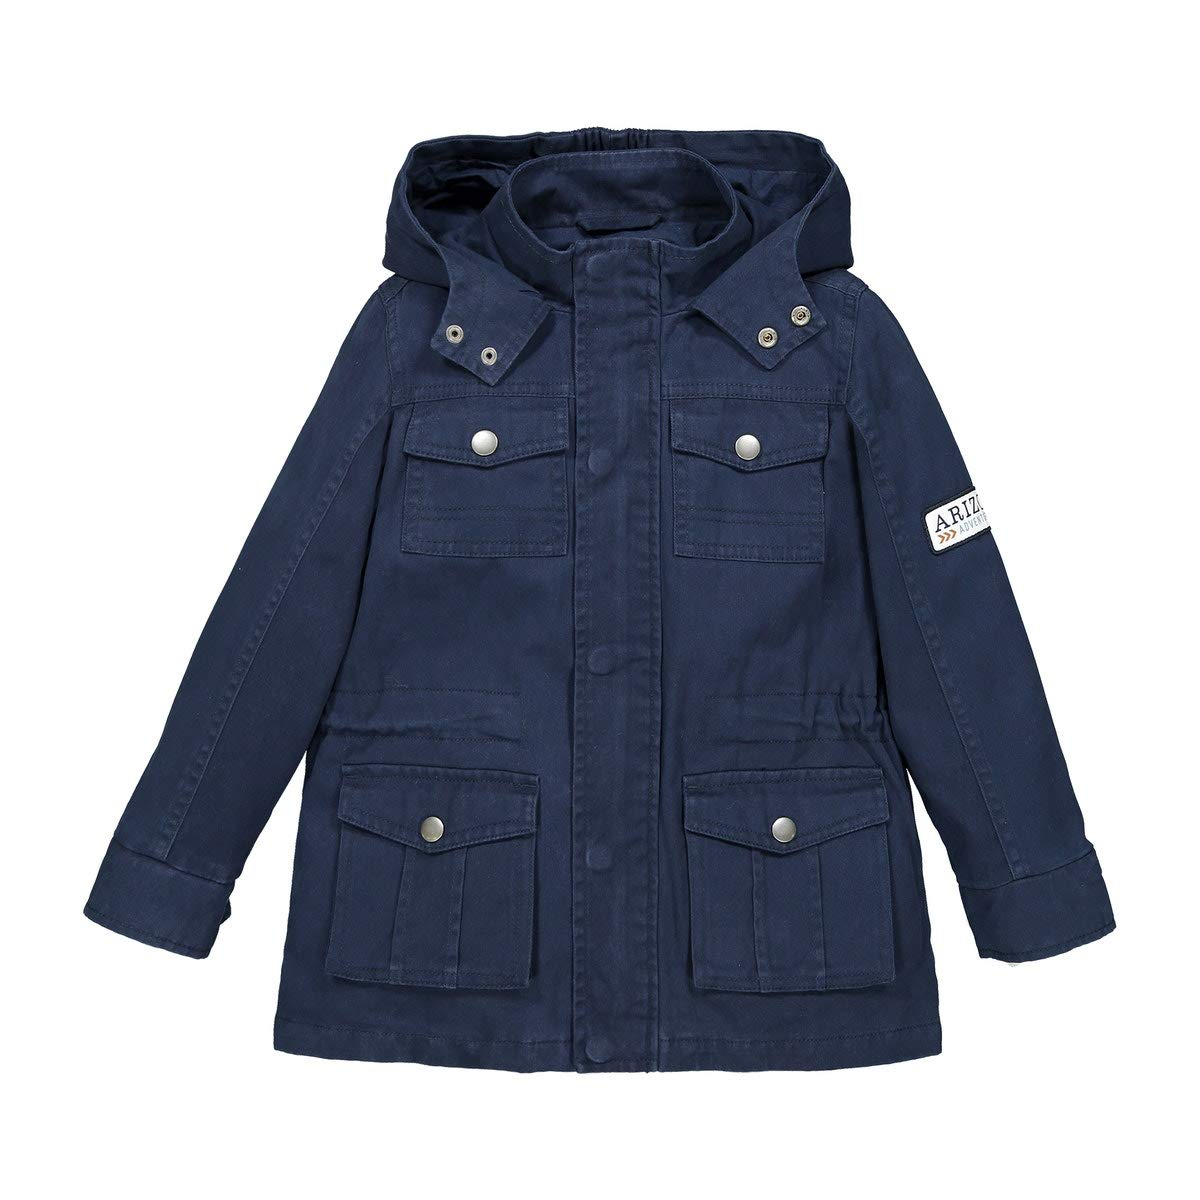 La Redoute Collections Cotton Hooded Parka, 3-12 Years Blue Size 6 Years (114 cm)